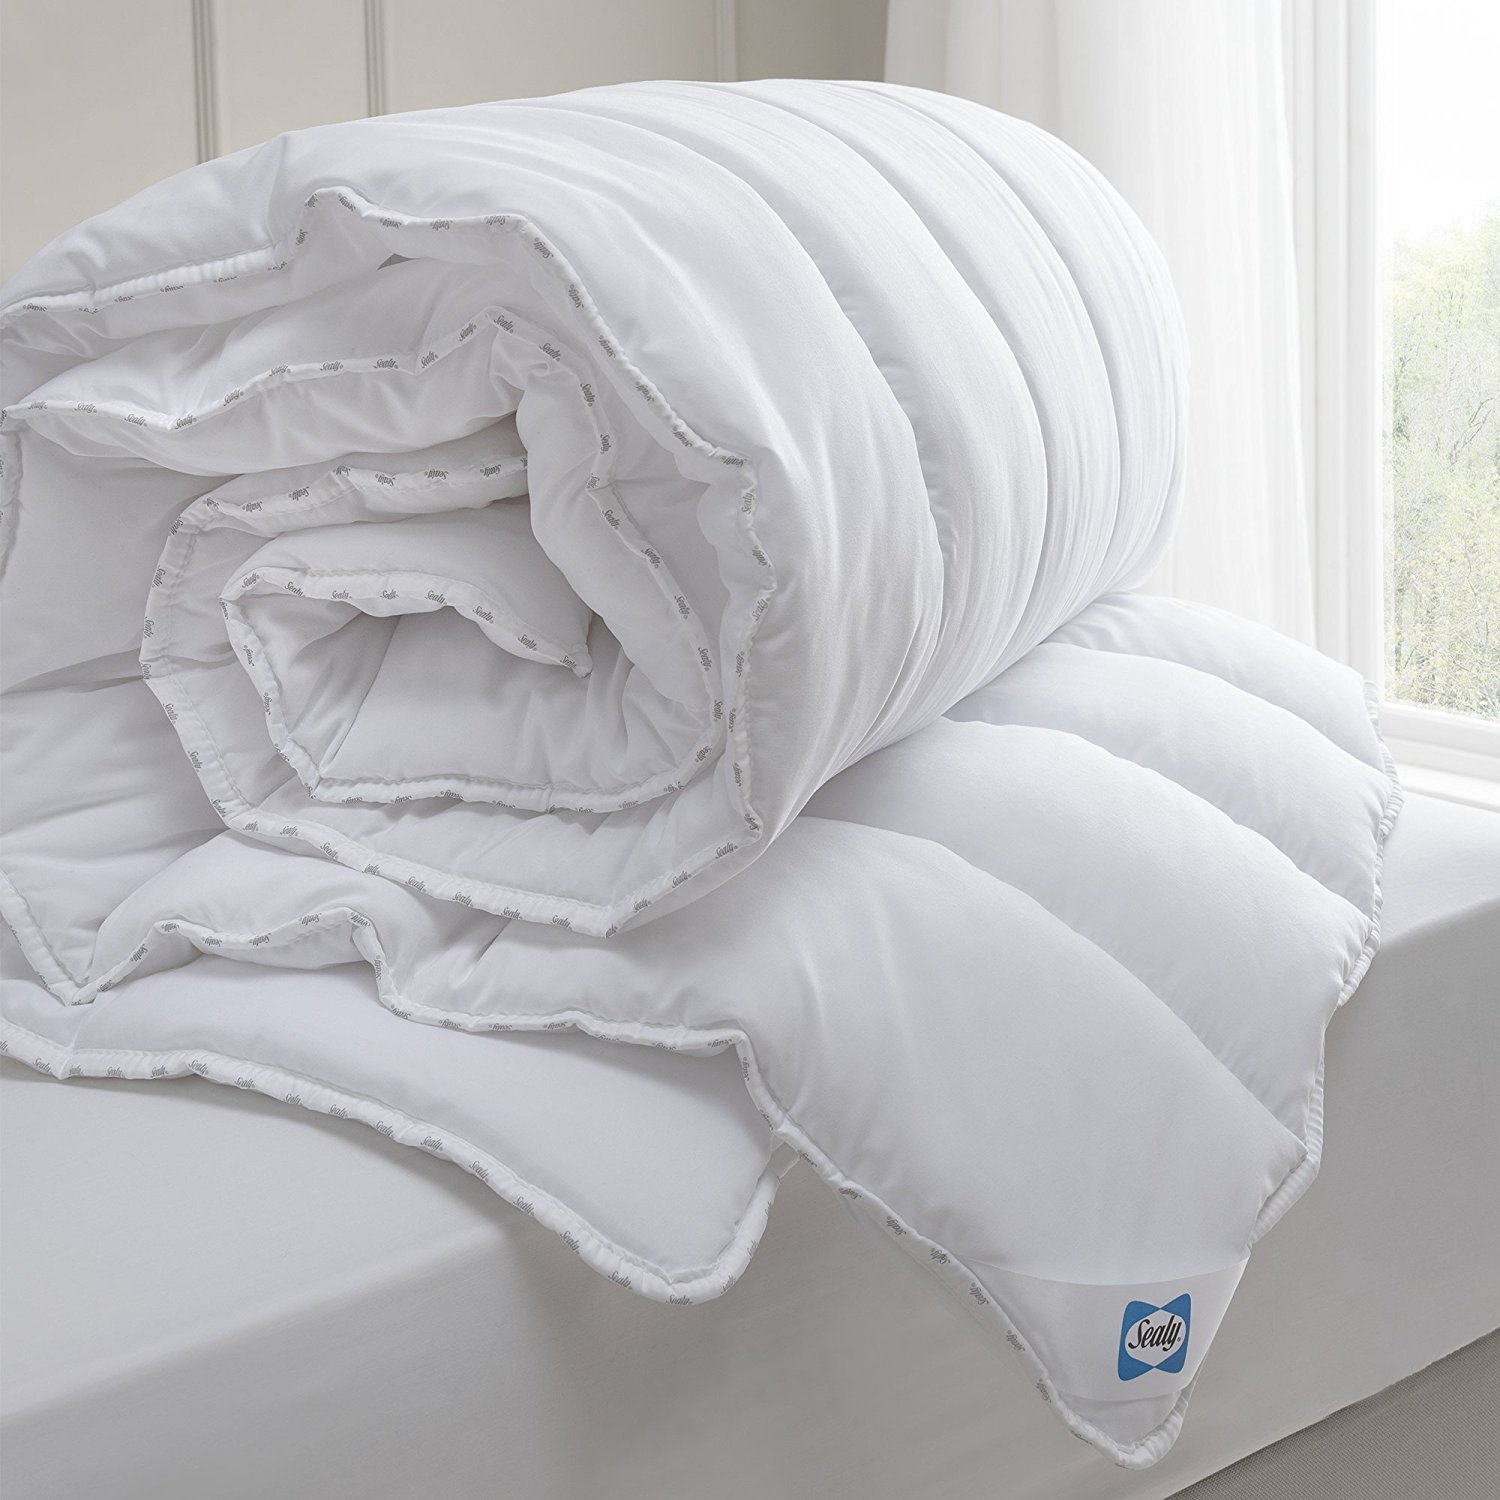 Sealy Select Response Duvet Reviewed